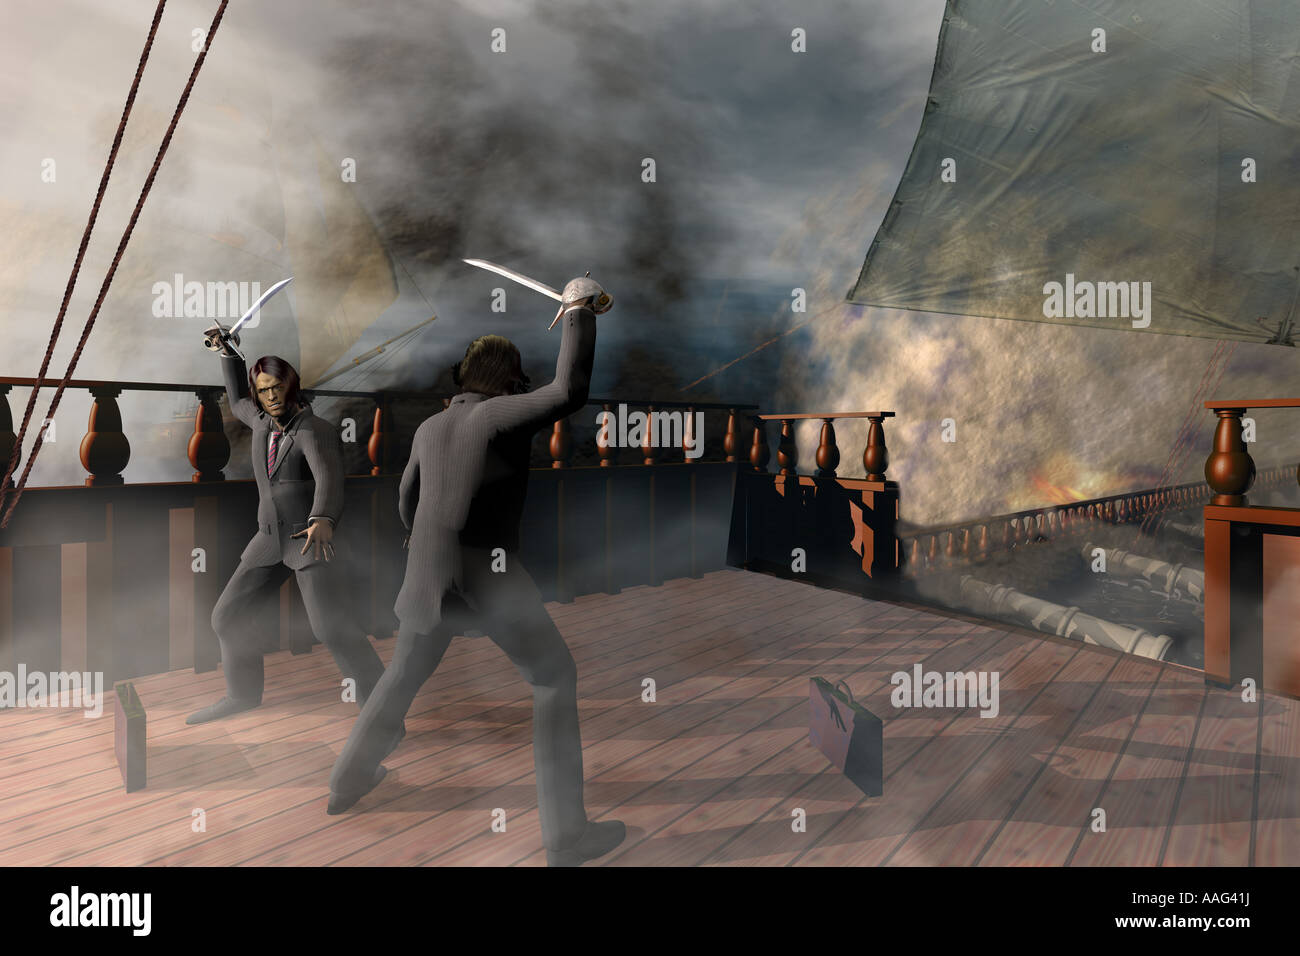 Business men fighting aboard ship. - Stock Image